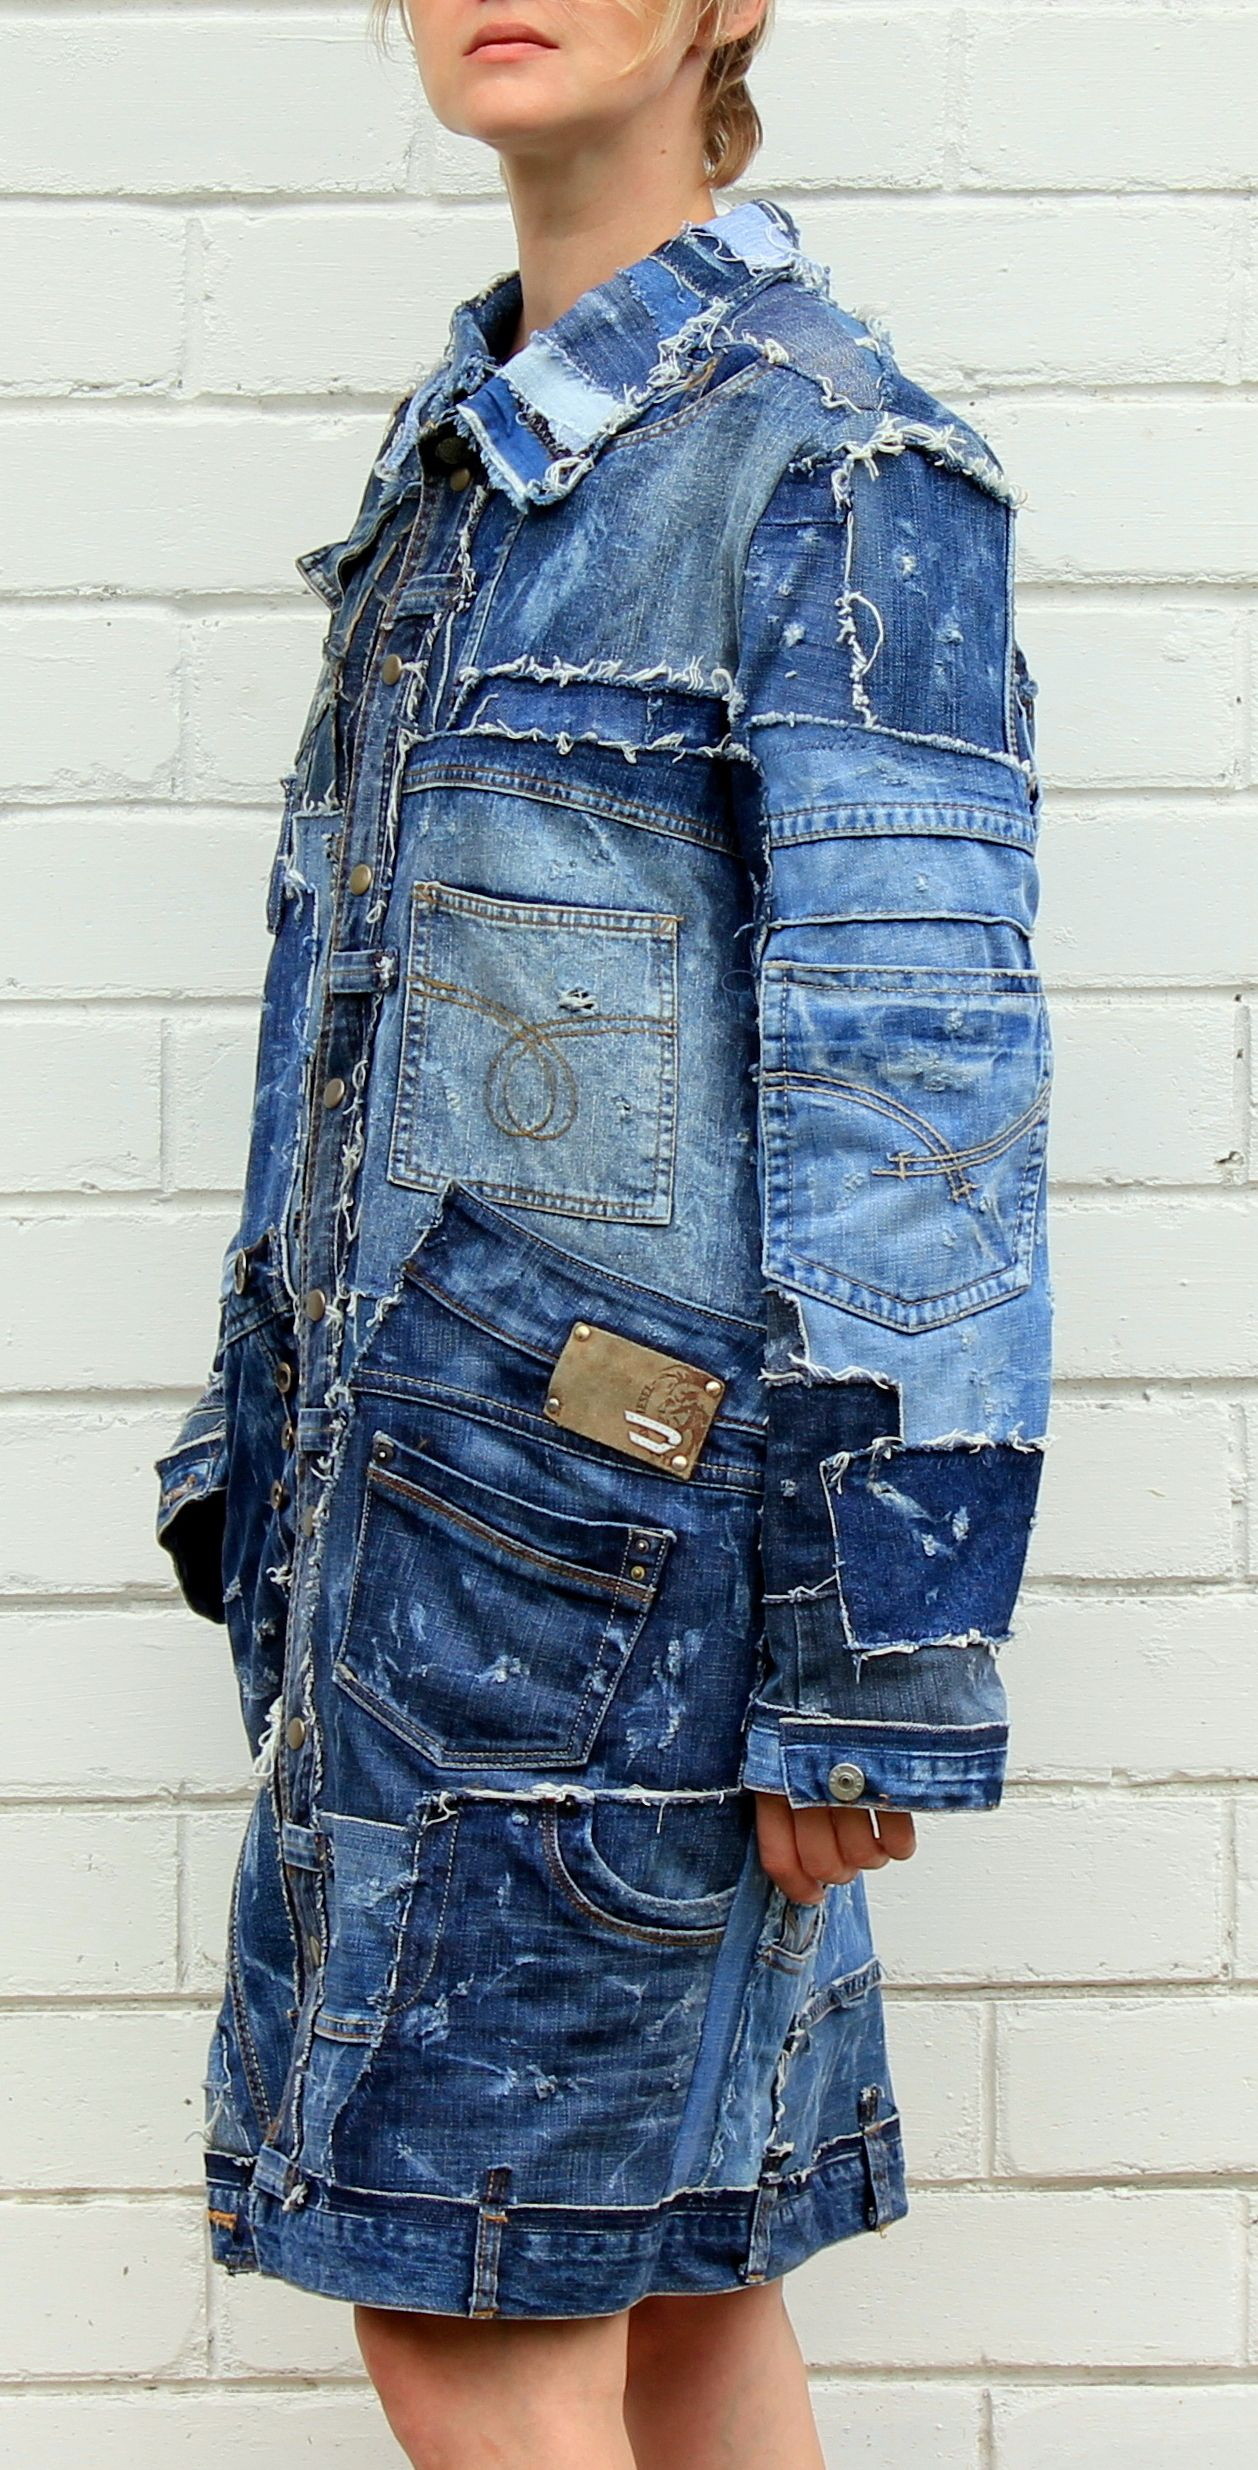 Stonewashed Jeans Patchwork Coat Distressed Long Denim Jacket Hipster Grunge Style Ripped Denim Long Denim Jacket Custom Denim Jacket [ 2470 x 1258 Pixel ]